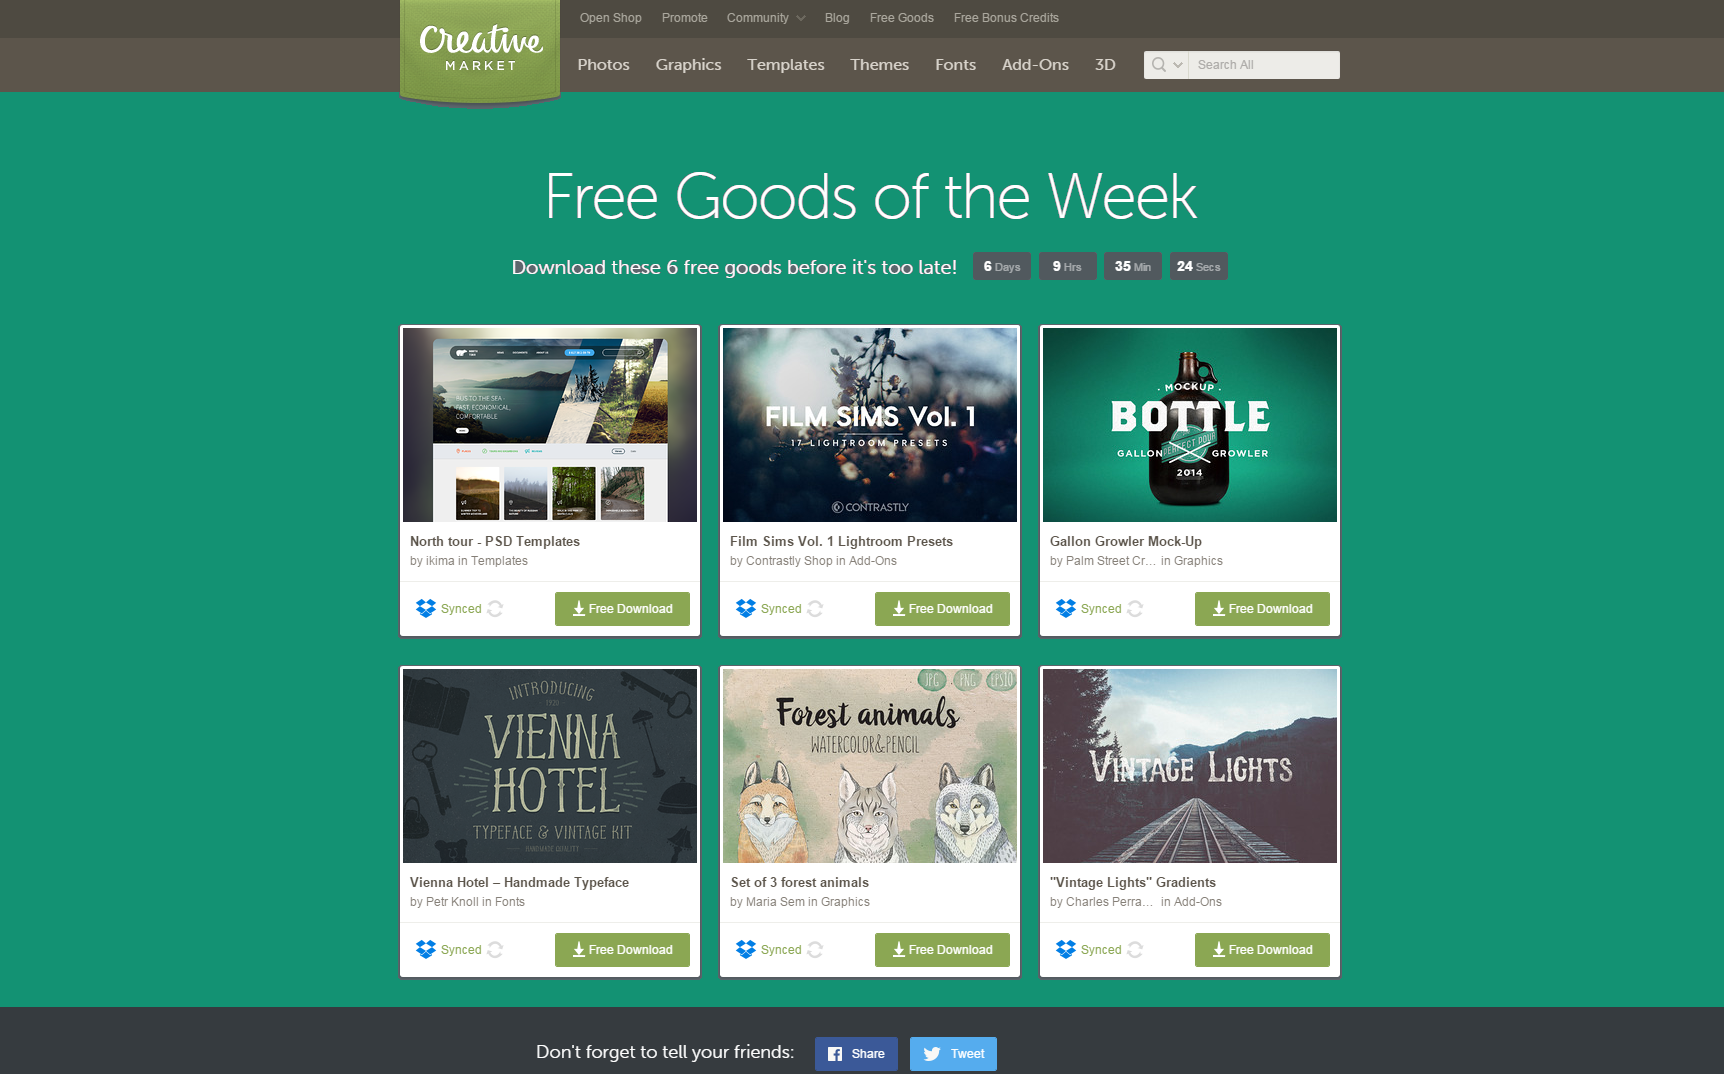 Free Goods of the Week by Creative Market. Download these 6 freebies until Sunday! Graphic Designer Happy Hour!